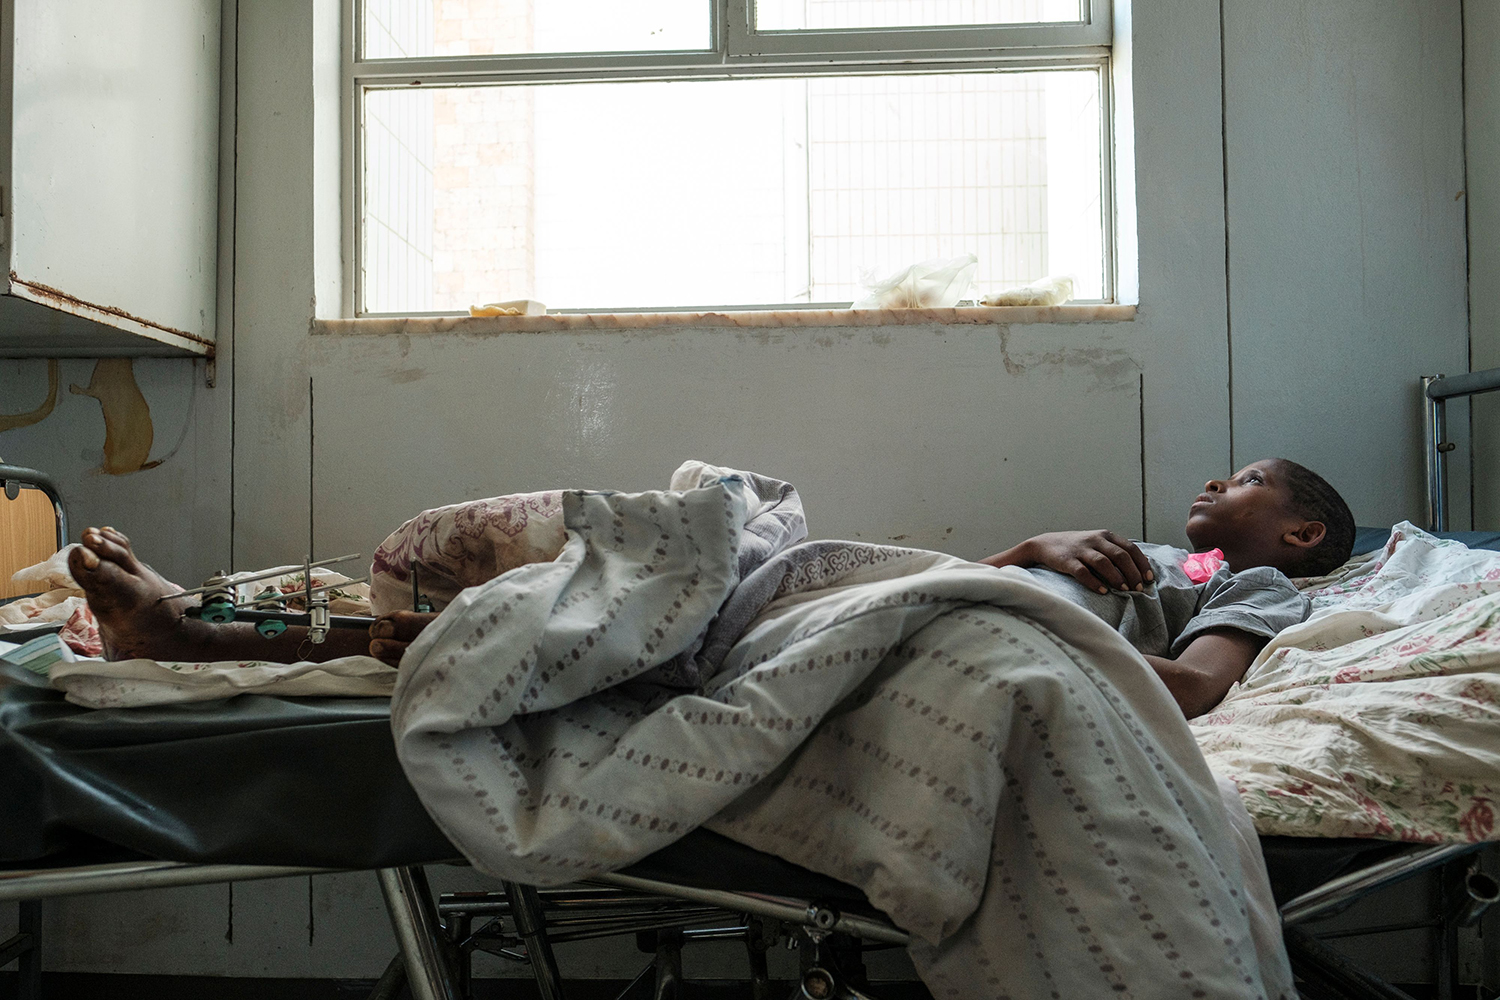 Desalegn Gebreselassie, 15, lies in a bed at Ayder Referral Hospital in the Tigray capital Mekele in northern Ethiopia on Feb. 25 after being injured during fighting between the Tigray People's Liberation Front and the Ethiopian government. EDUARDO SOTERAS/AFP via Getty Images